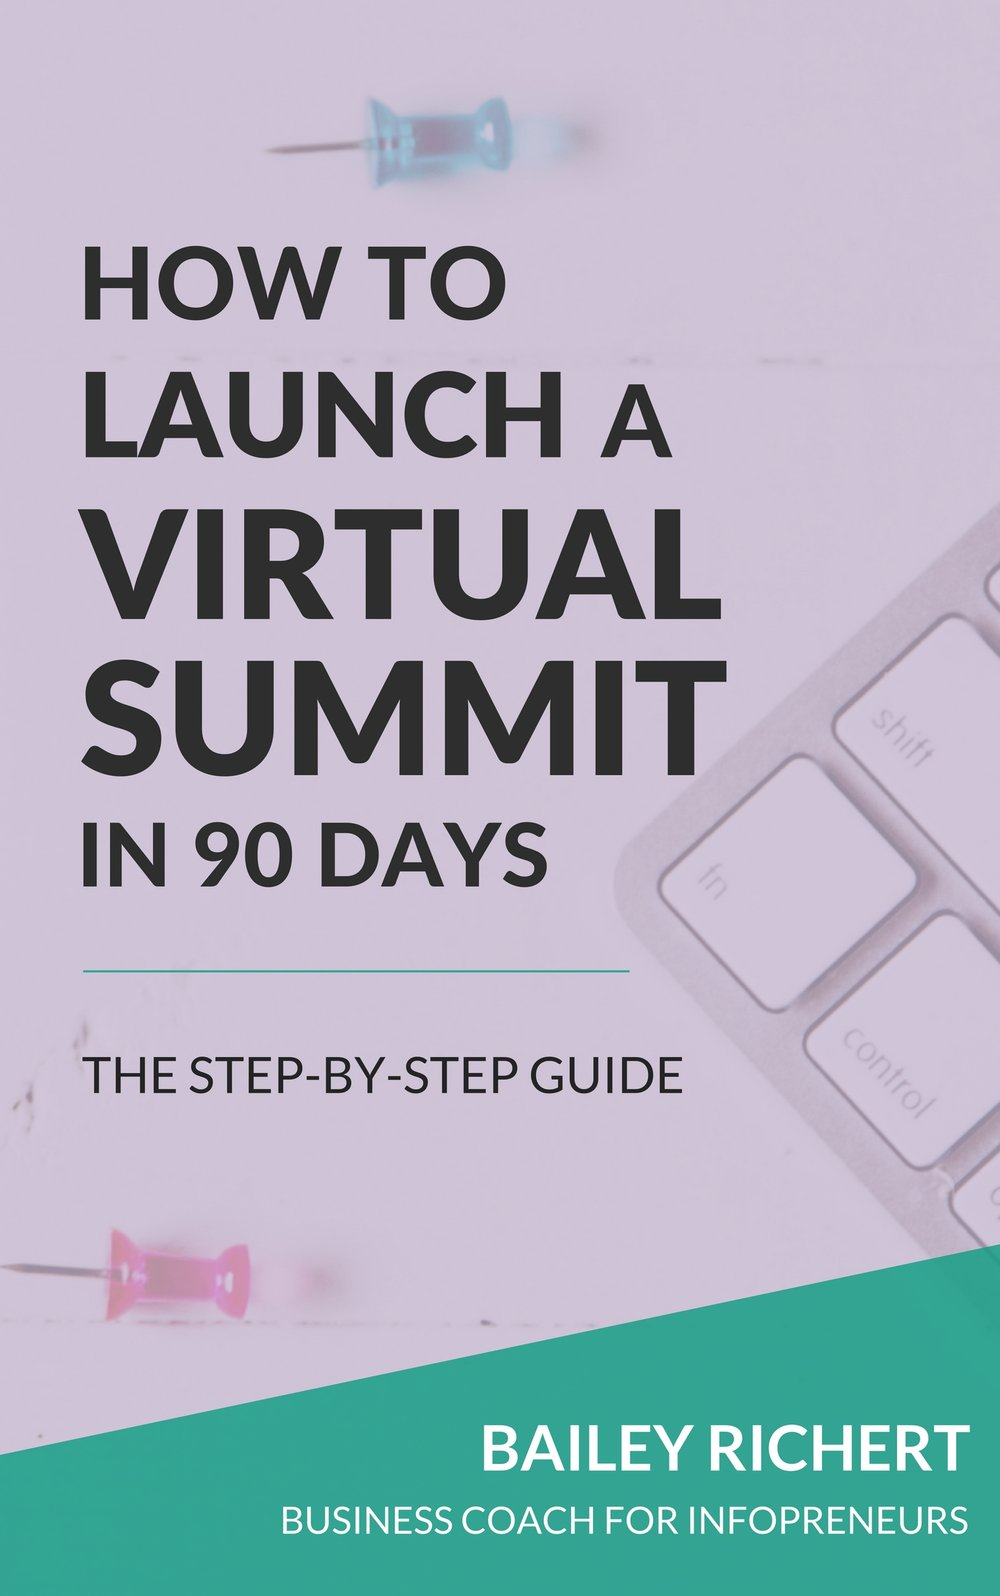 How to Launch a Virtual Summit Kindle Ebook Cover - JPG.jpg